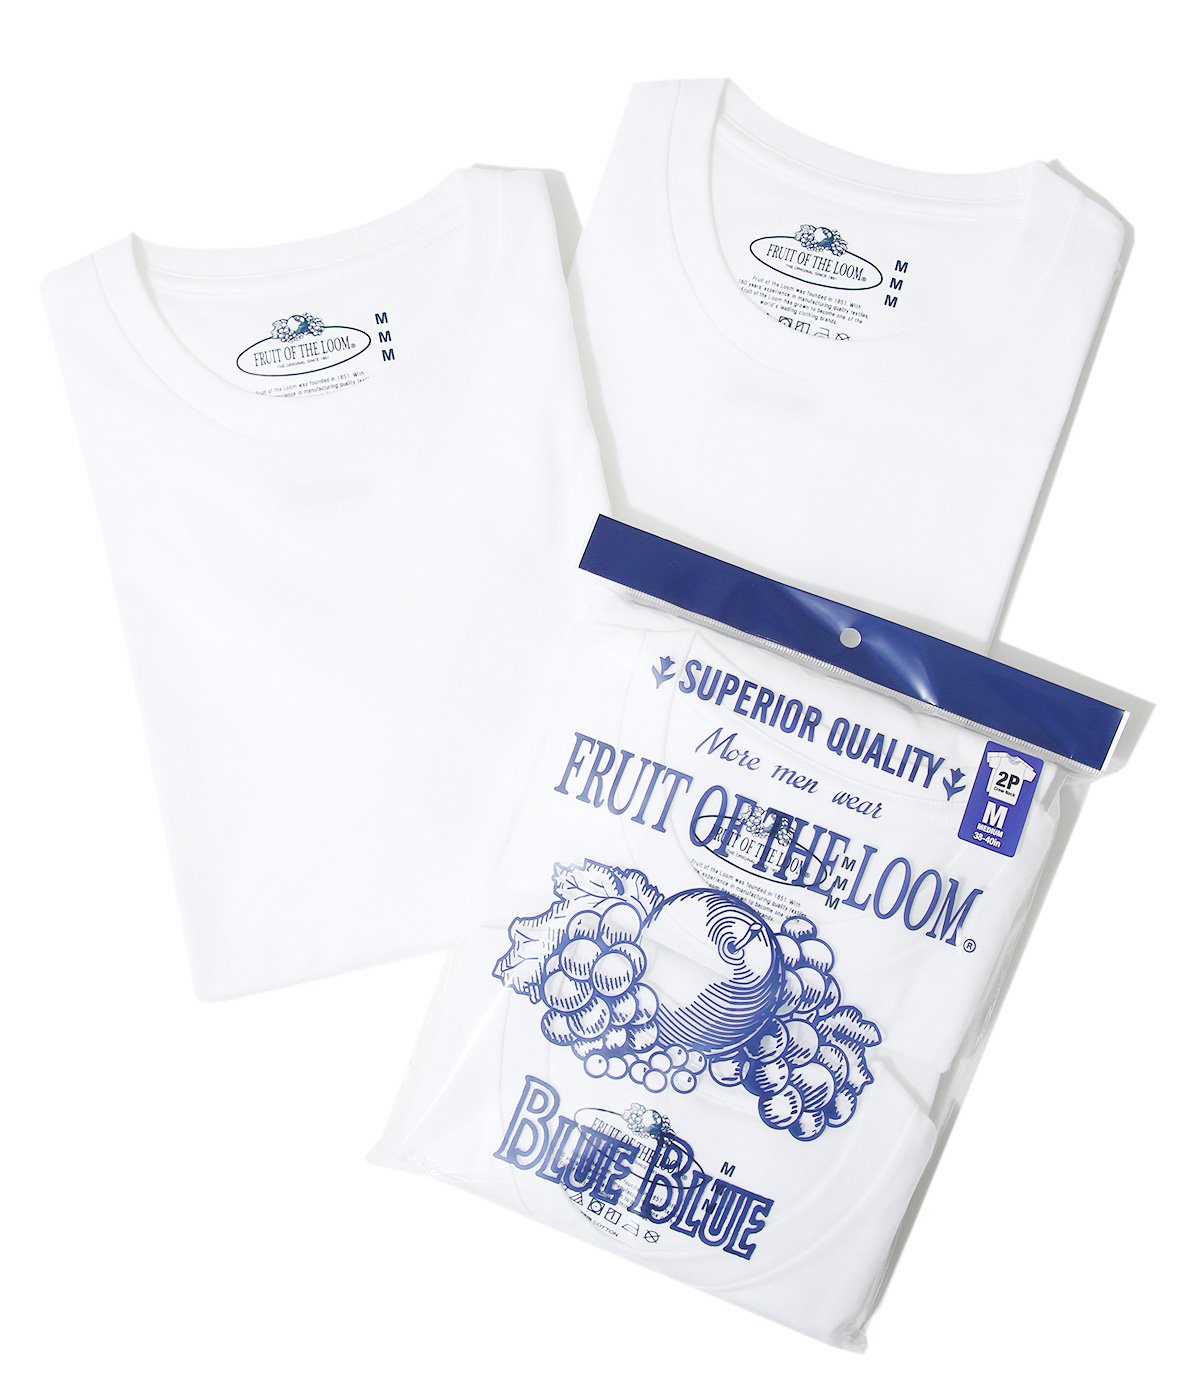 FRUIT OF THE LOOM BLUEBLUE SUPERIOR 2PK SS T